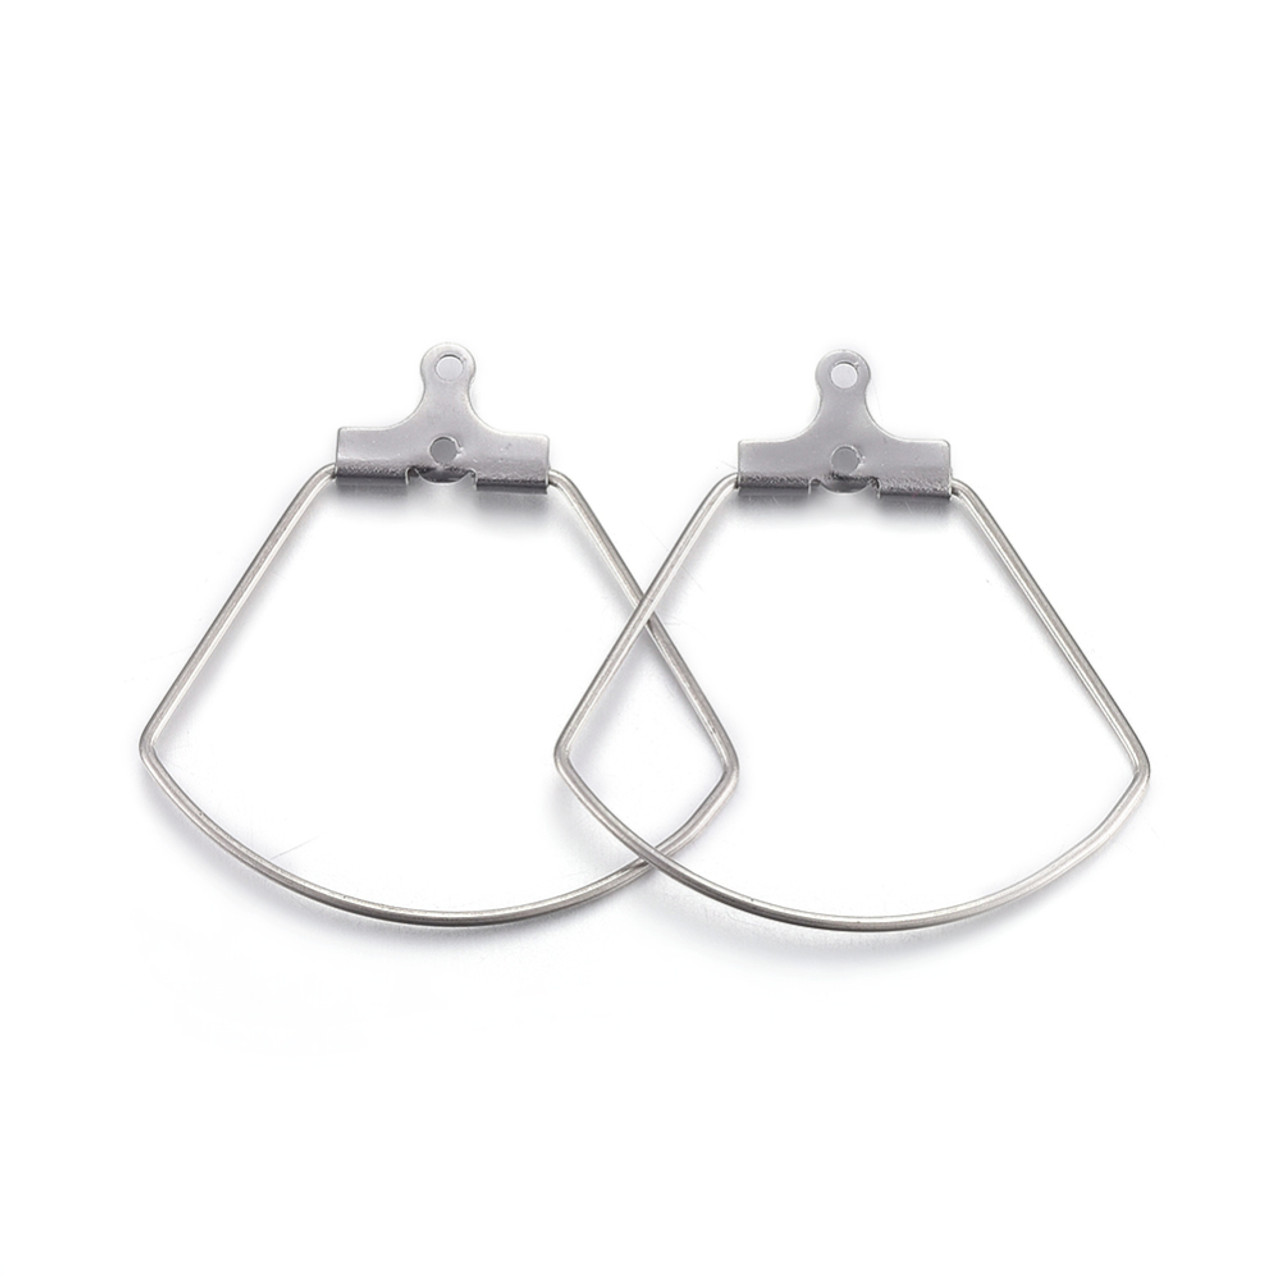 Hoop Earring Findings, Sector, Stainless Steel Color, 27x27x1.8mm, Hole: 1mm; Inner Size: 20x25.5mm; Pin: 0.7mm (1 Pair)